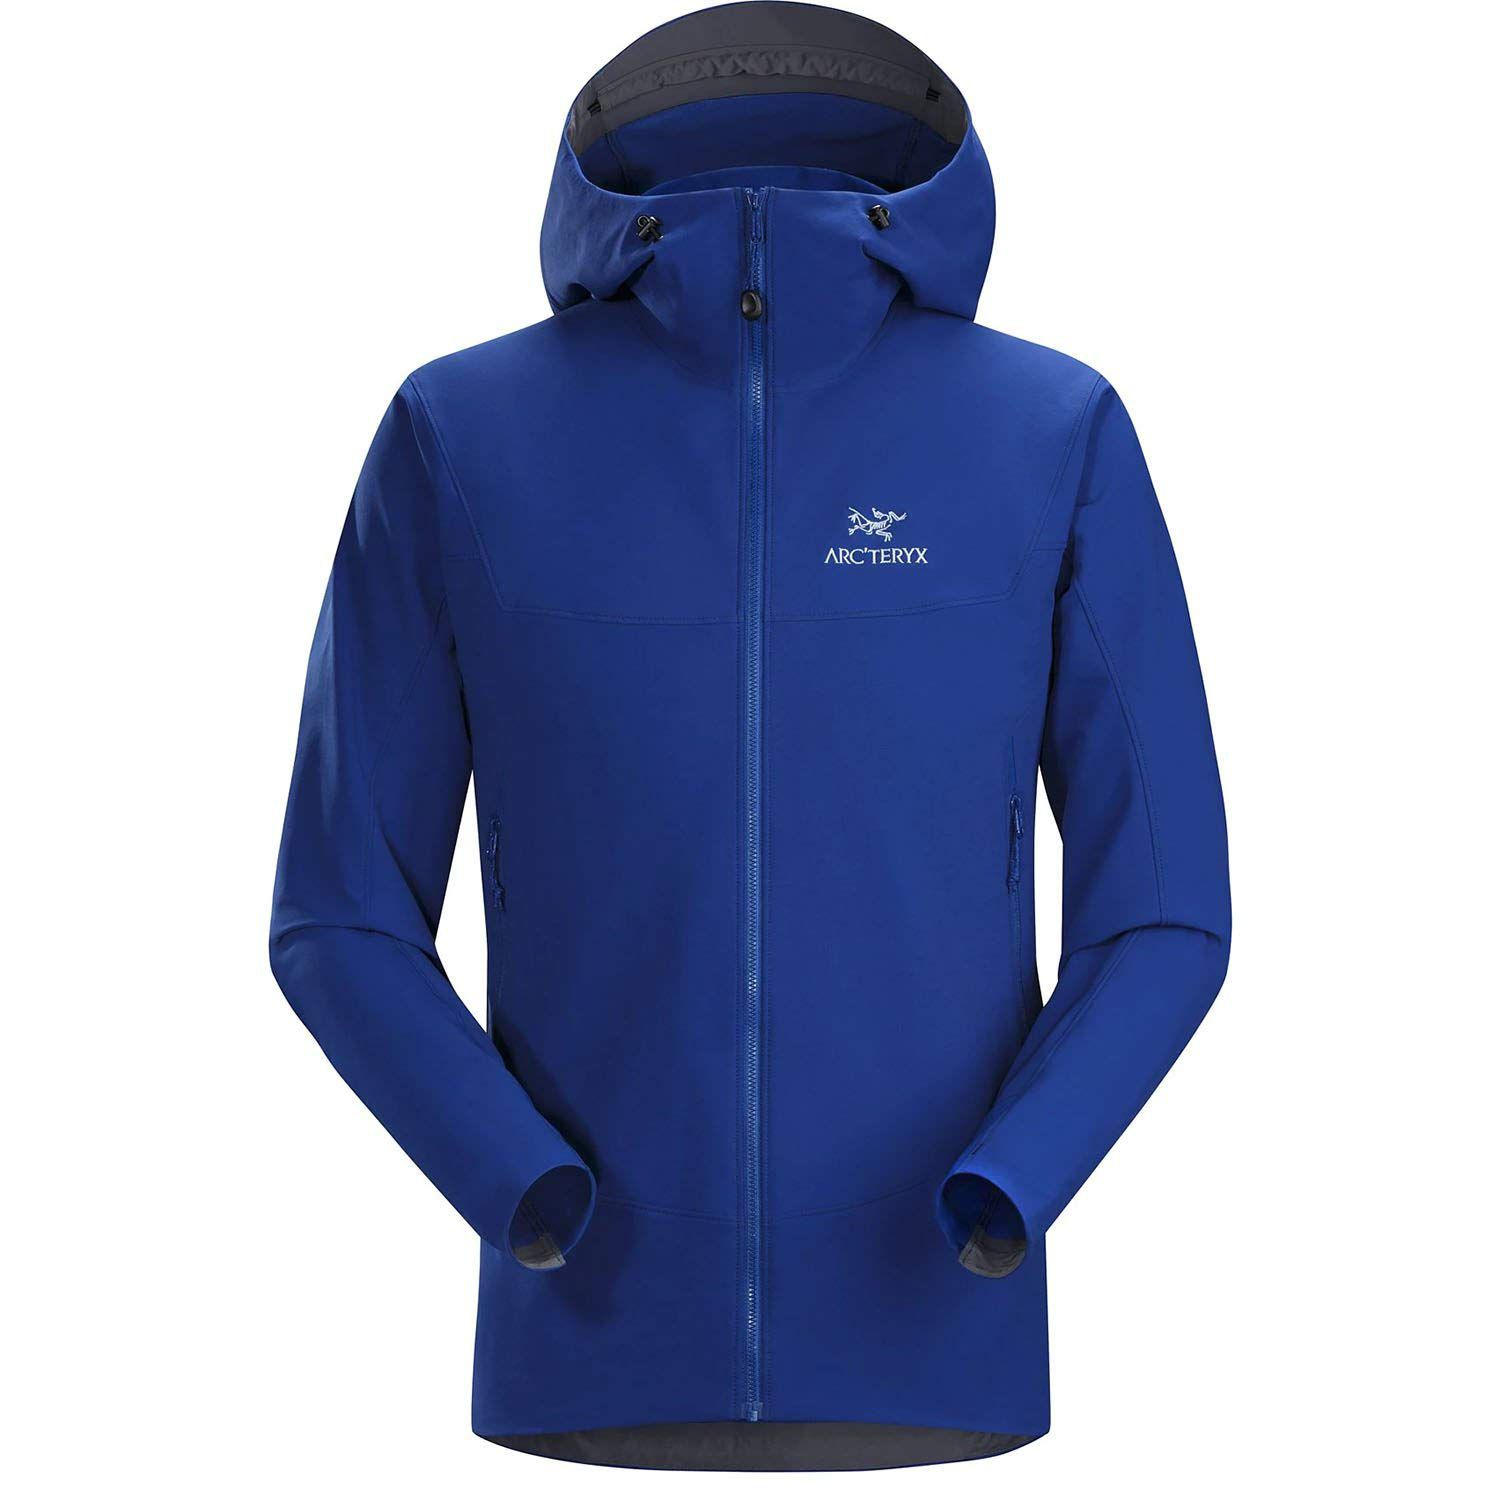 6fa5847257 The 8 Best Softshell Jackets of 2019